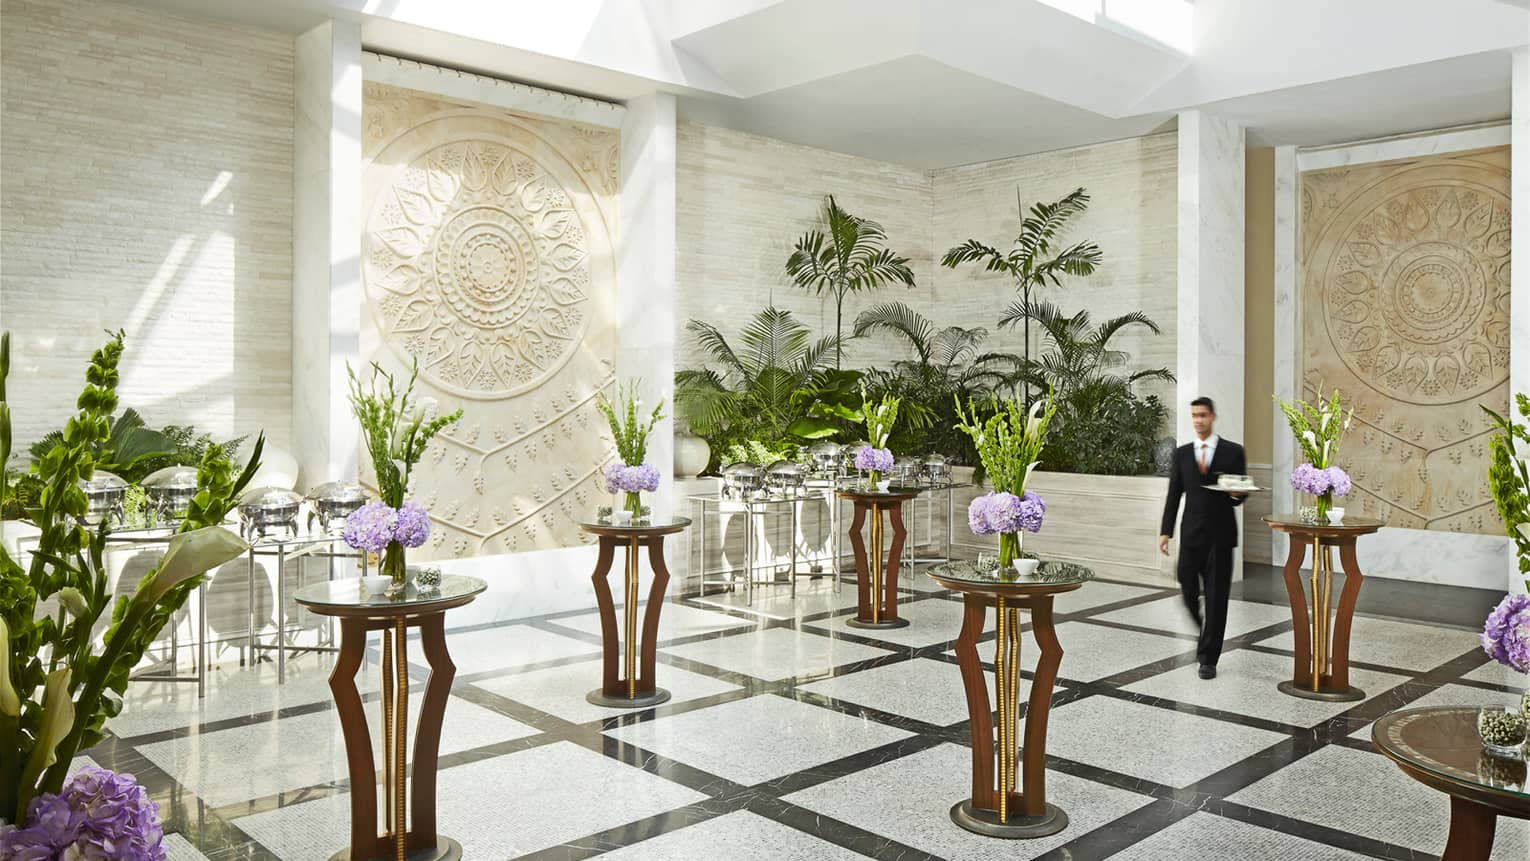 Server with tray walks through white marble room with accent tables, floral displays